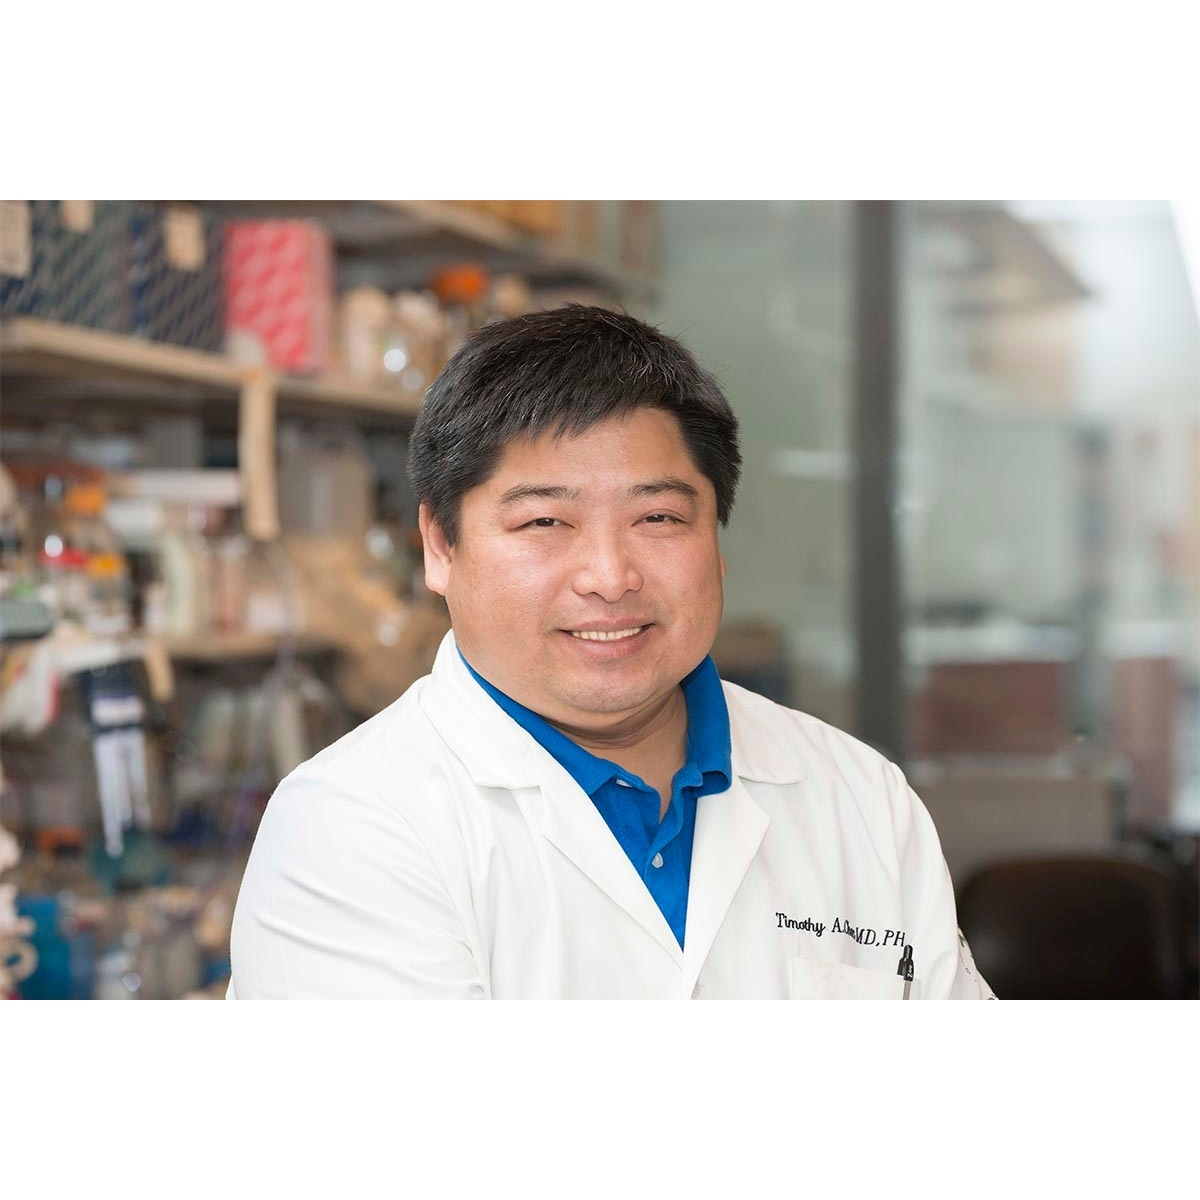 Image For Dr. Timothy A. Chan MD, PHD